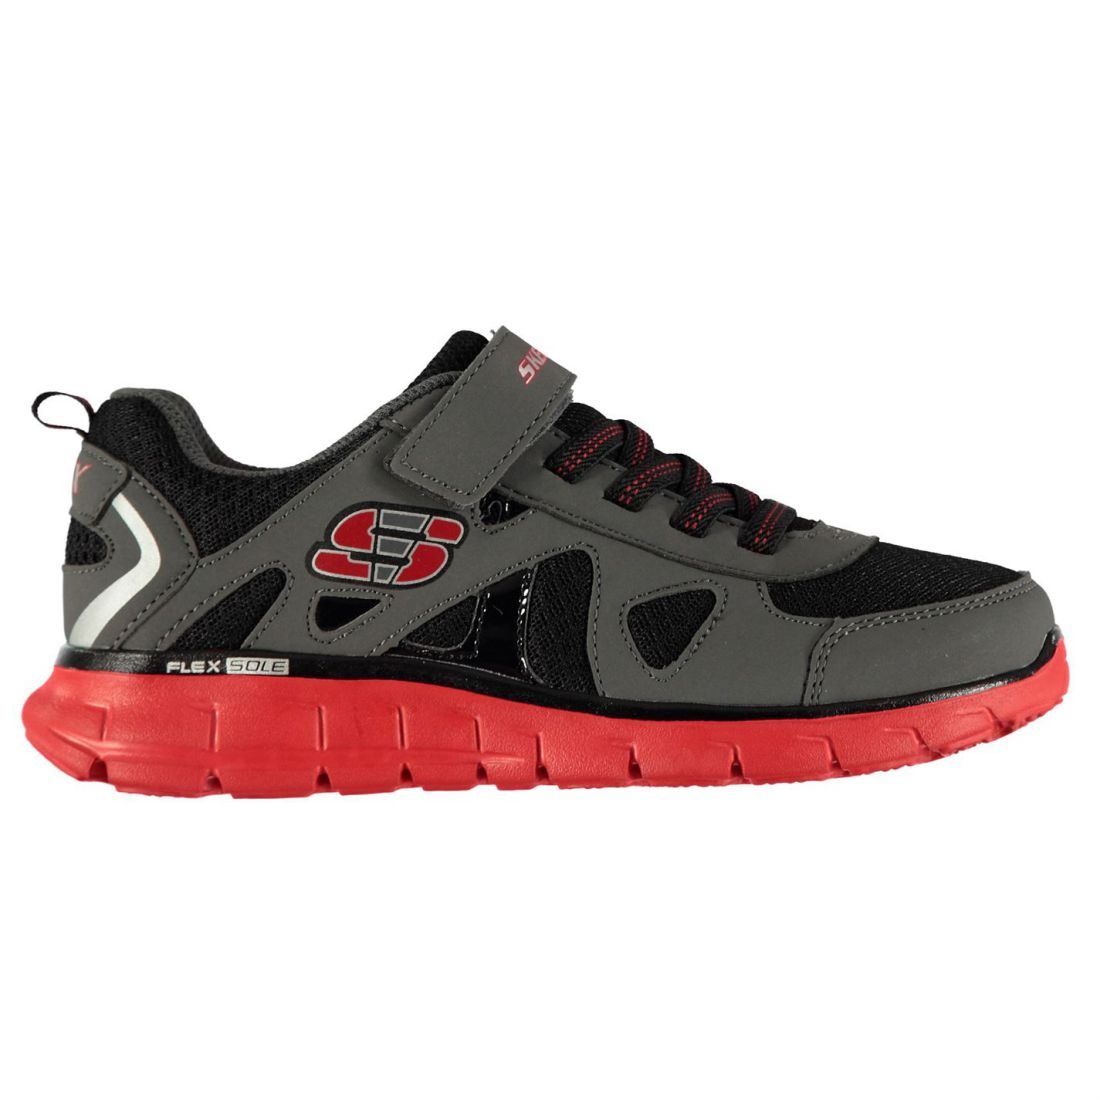 d78f3415f Details about Skechers Kids Boys Vim Speed Trainers Child Runners  Elasticated Laces Breathable